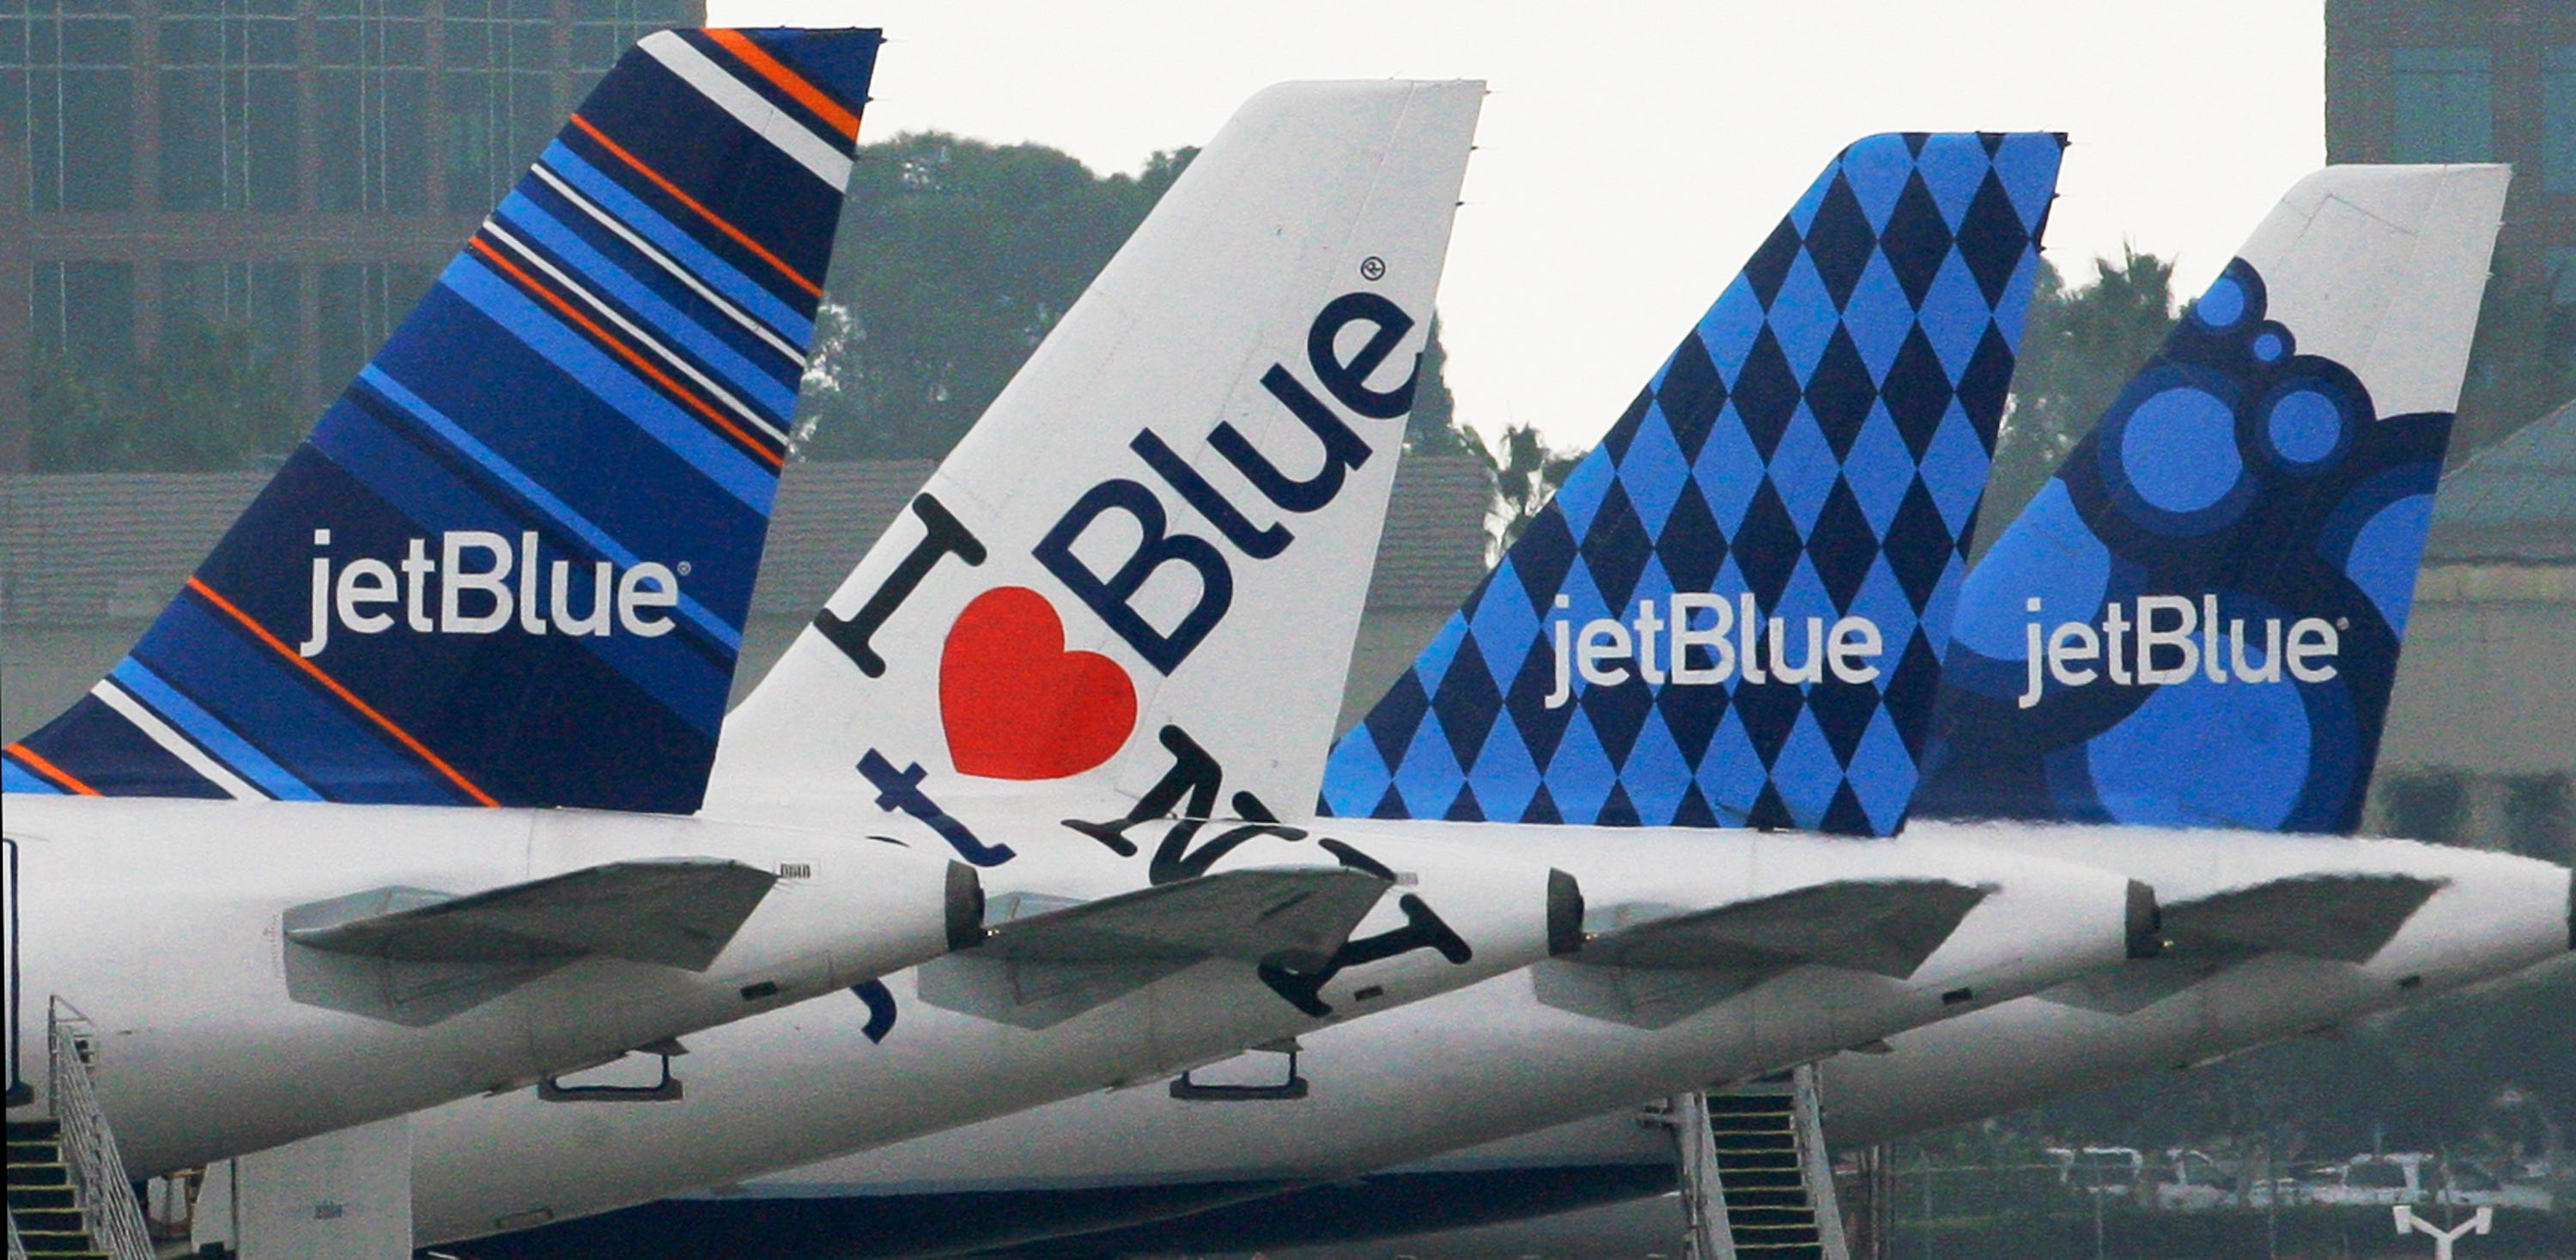 JetBlue to charge $30 for first checked bag; will others follow?